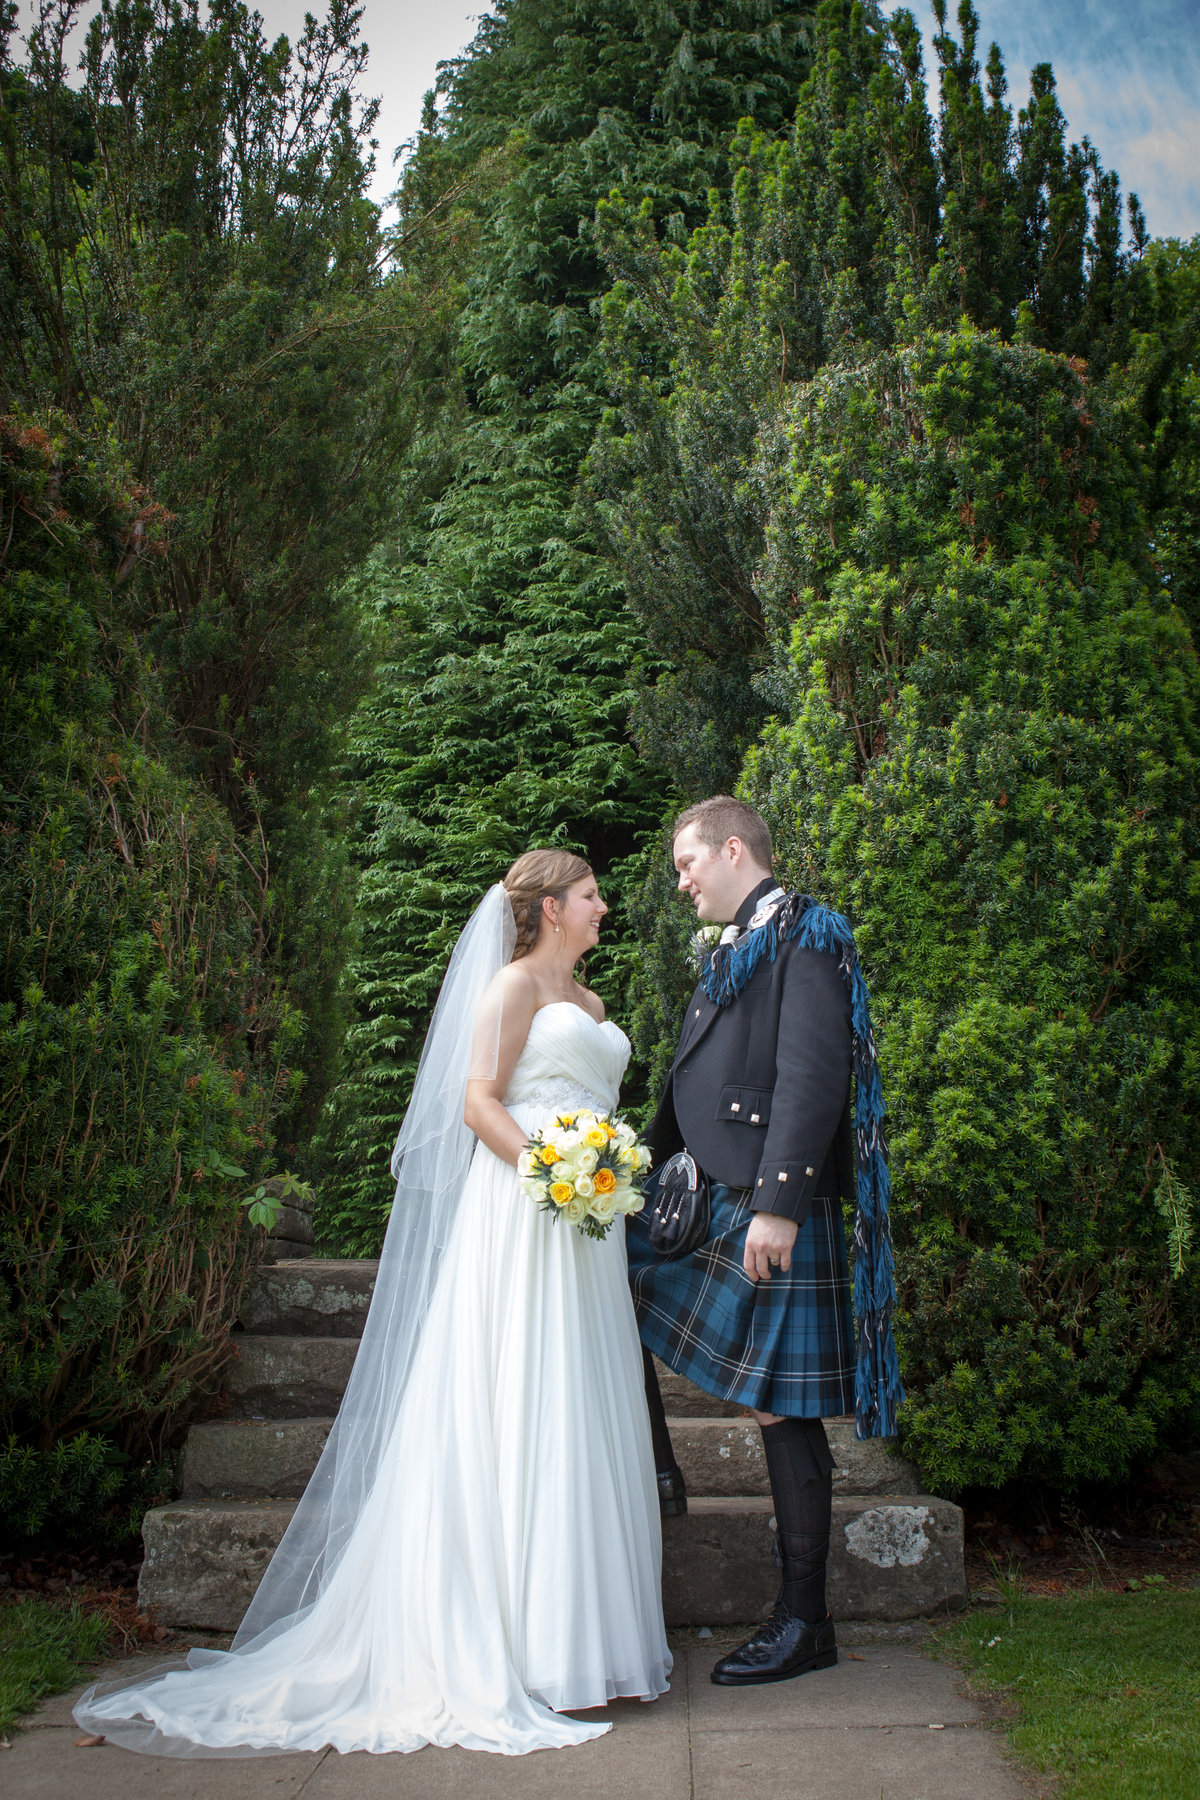 Full Length colour portrait of bride and groom